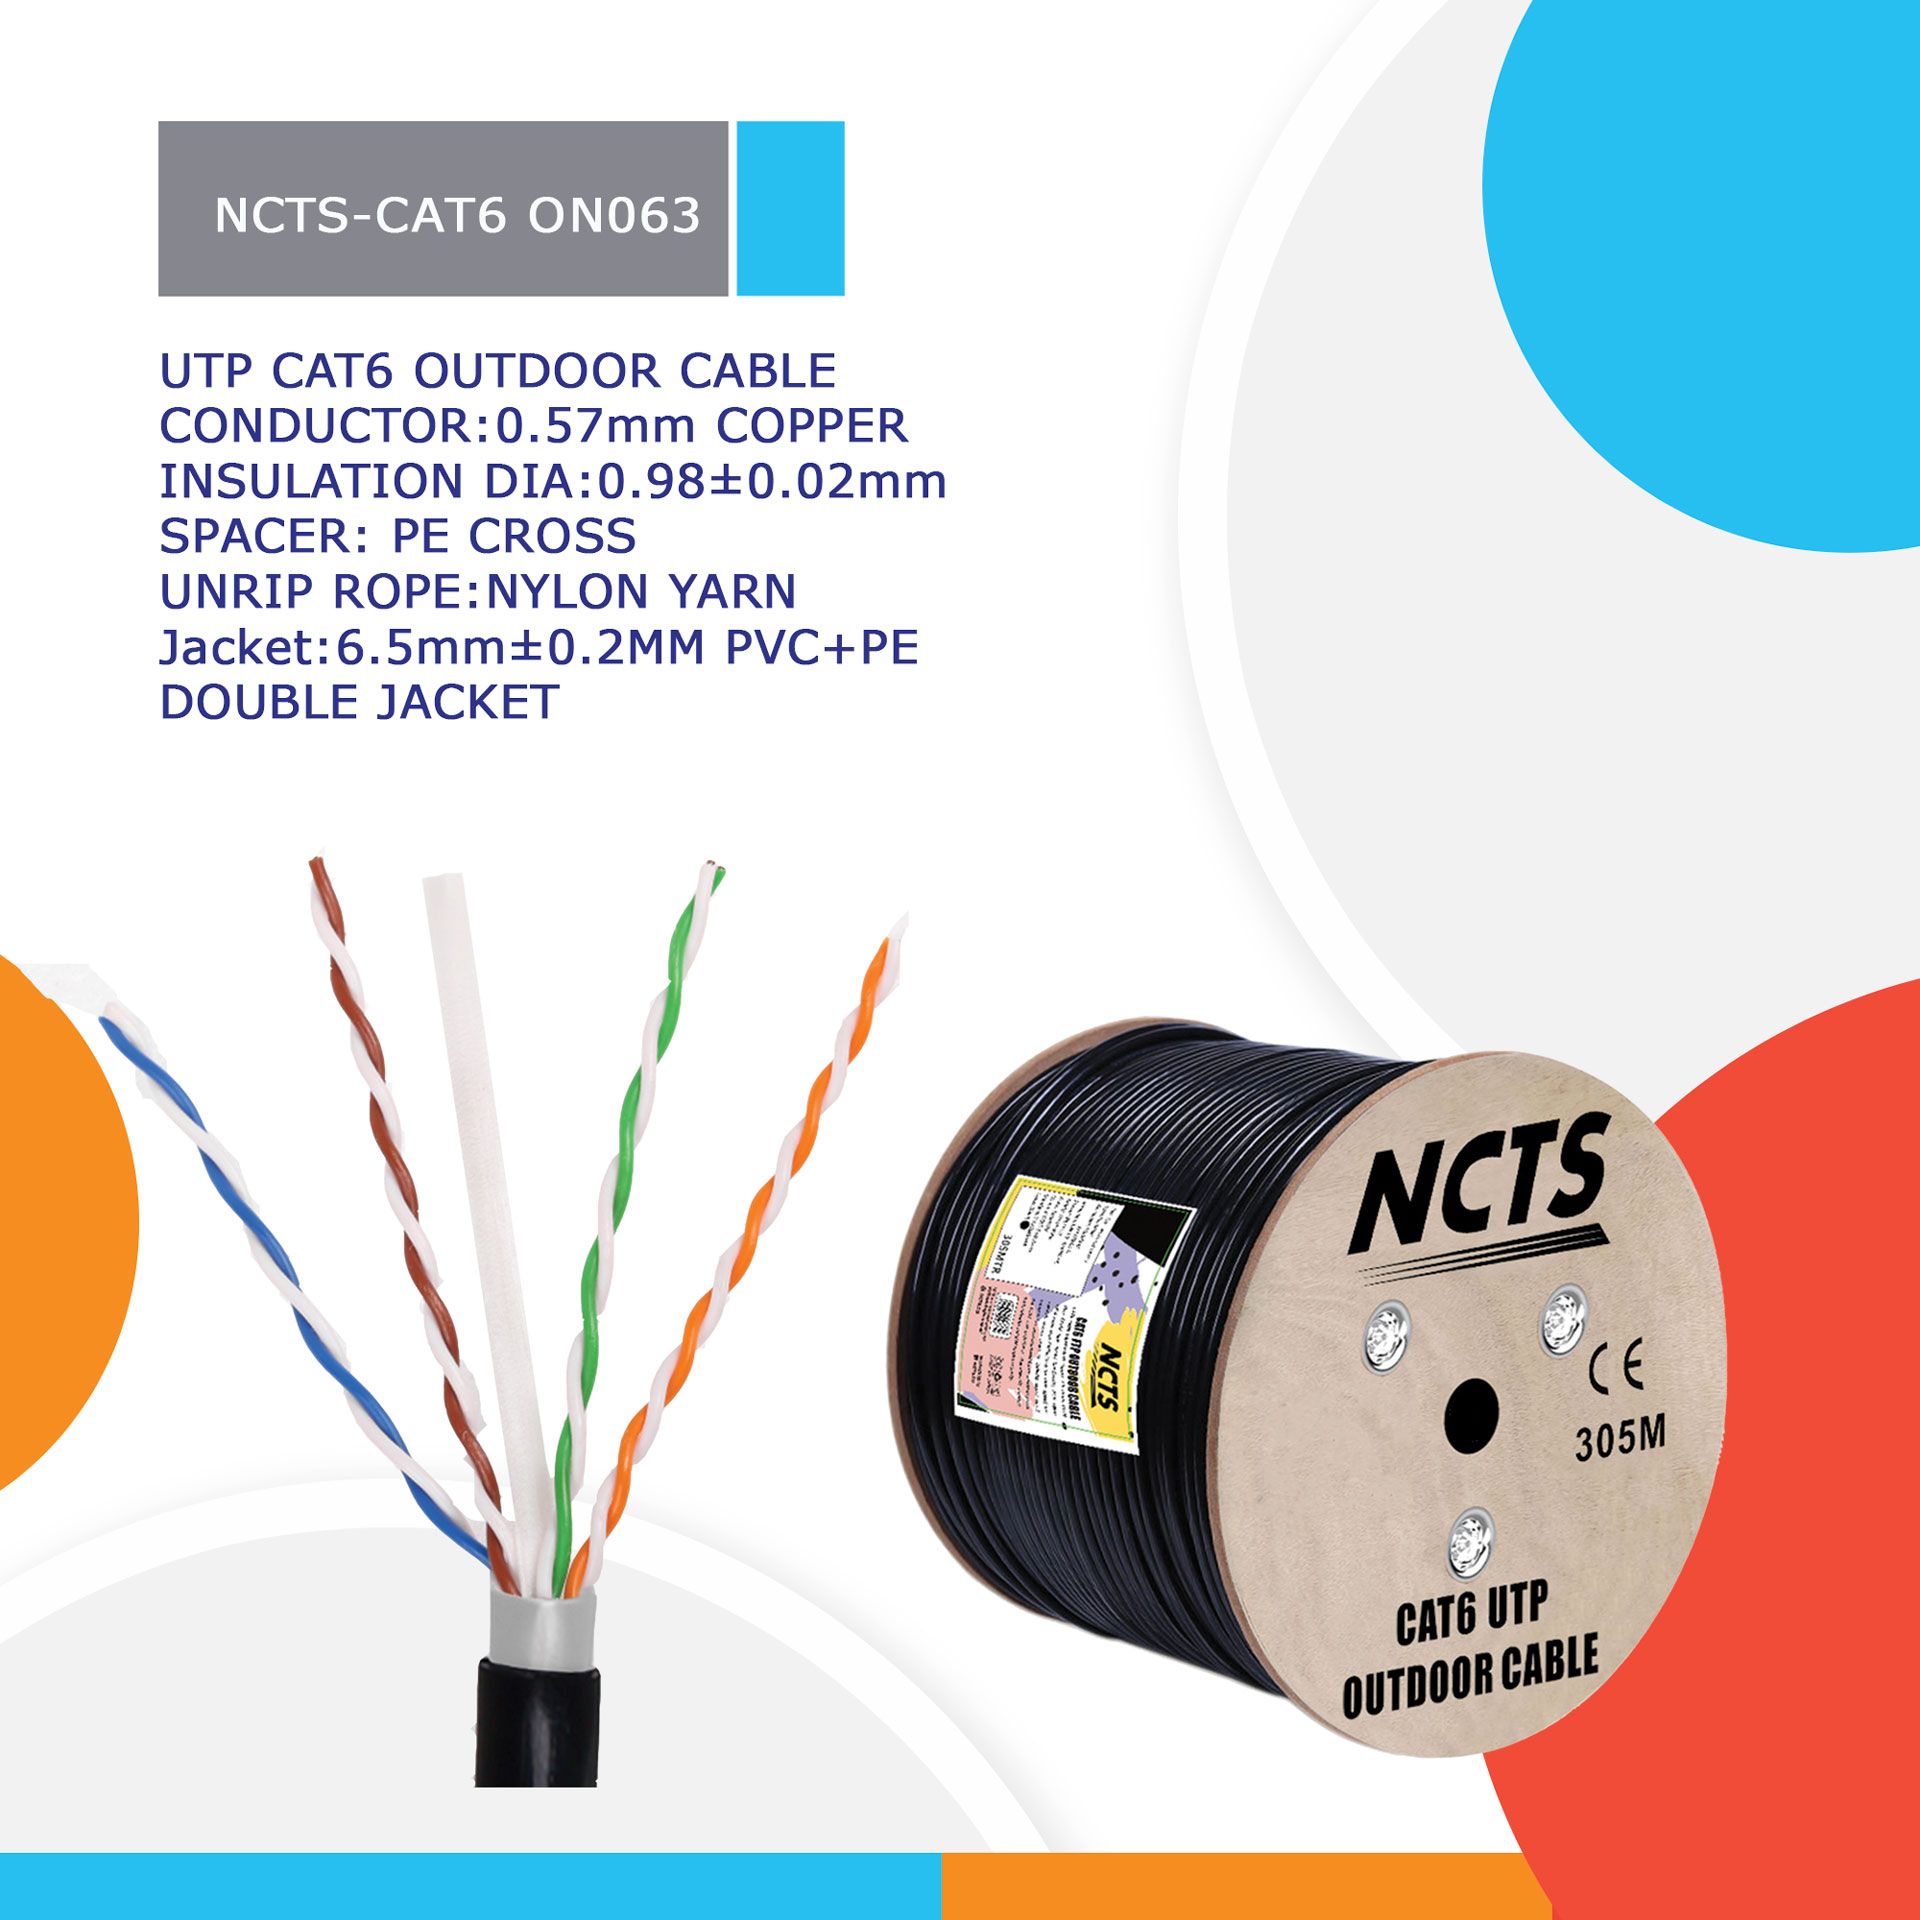 NCTS-CAT6 ON063